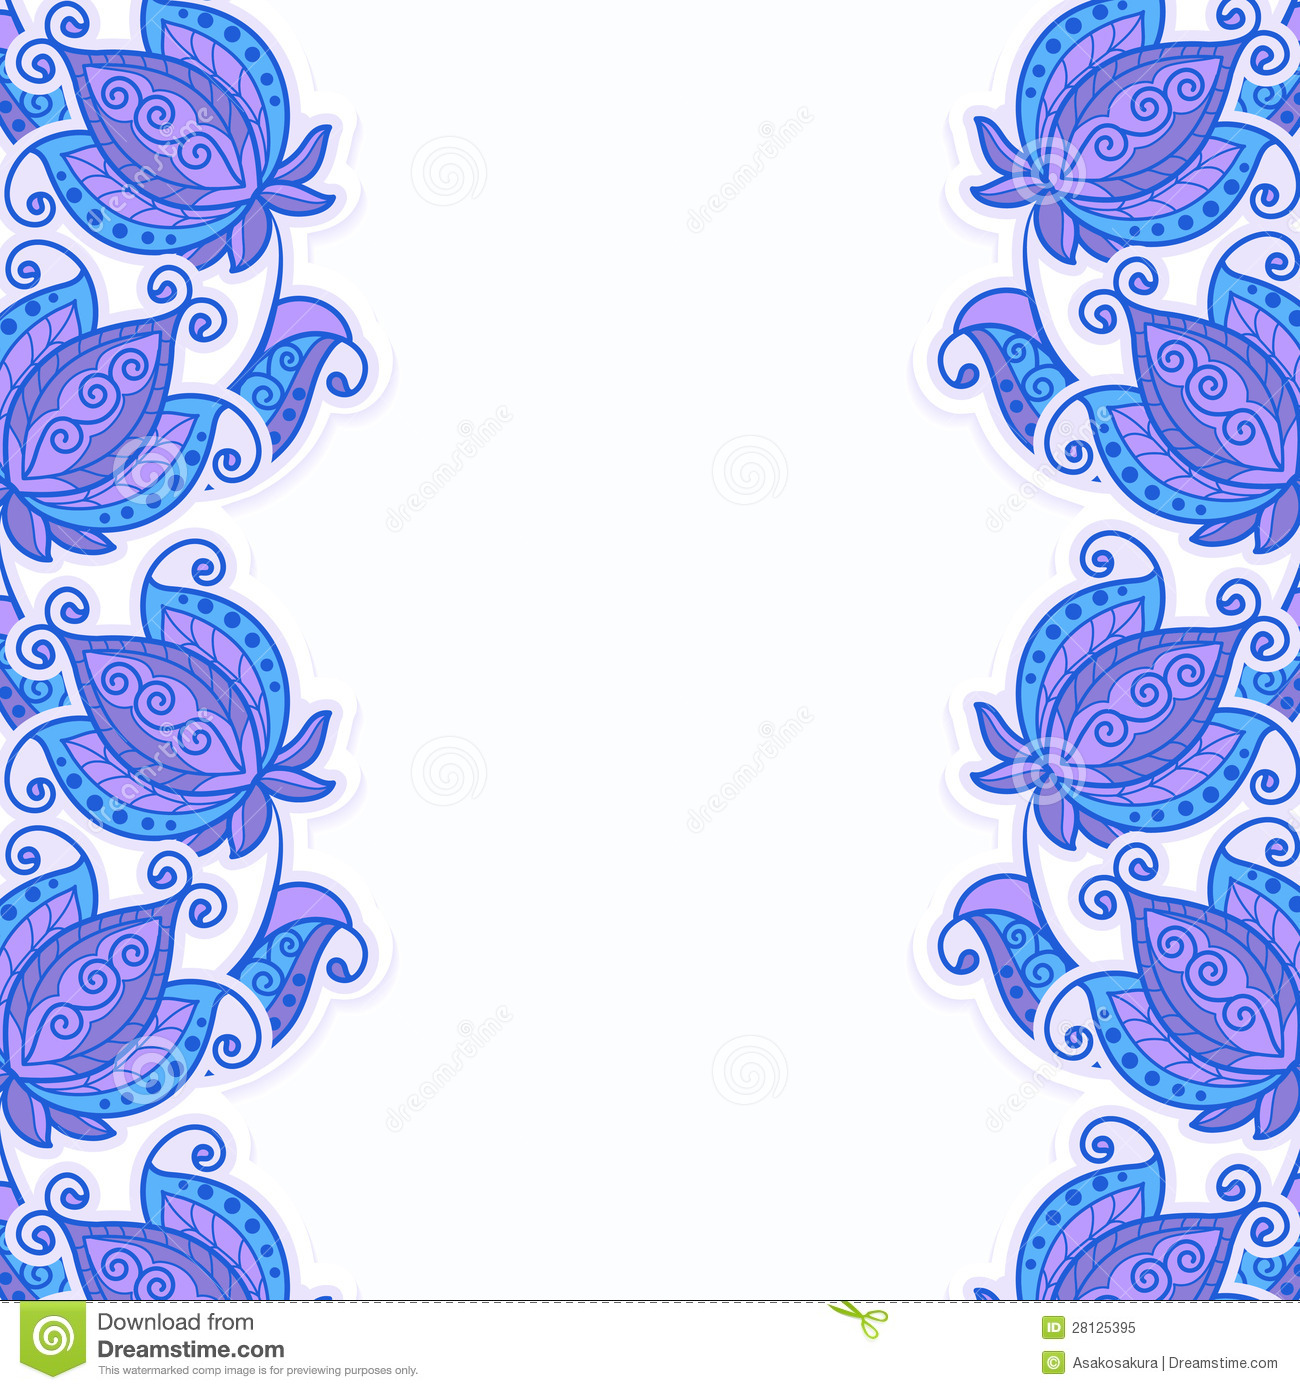 Card Or Invitation With Floral Background. Stock Vector - Image: 28125395